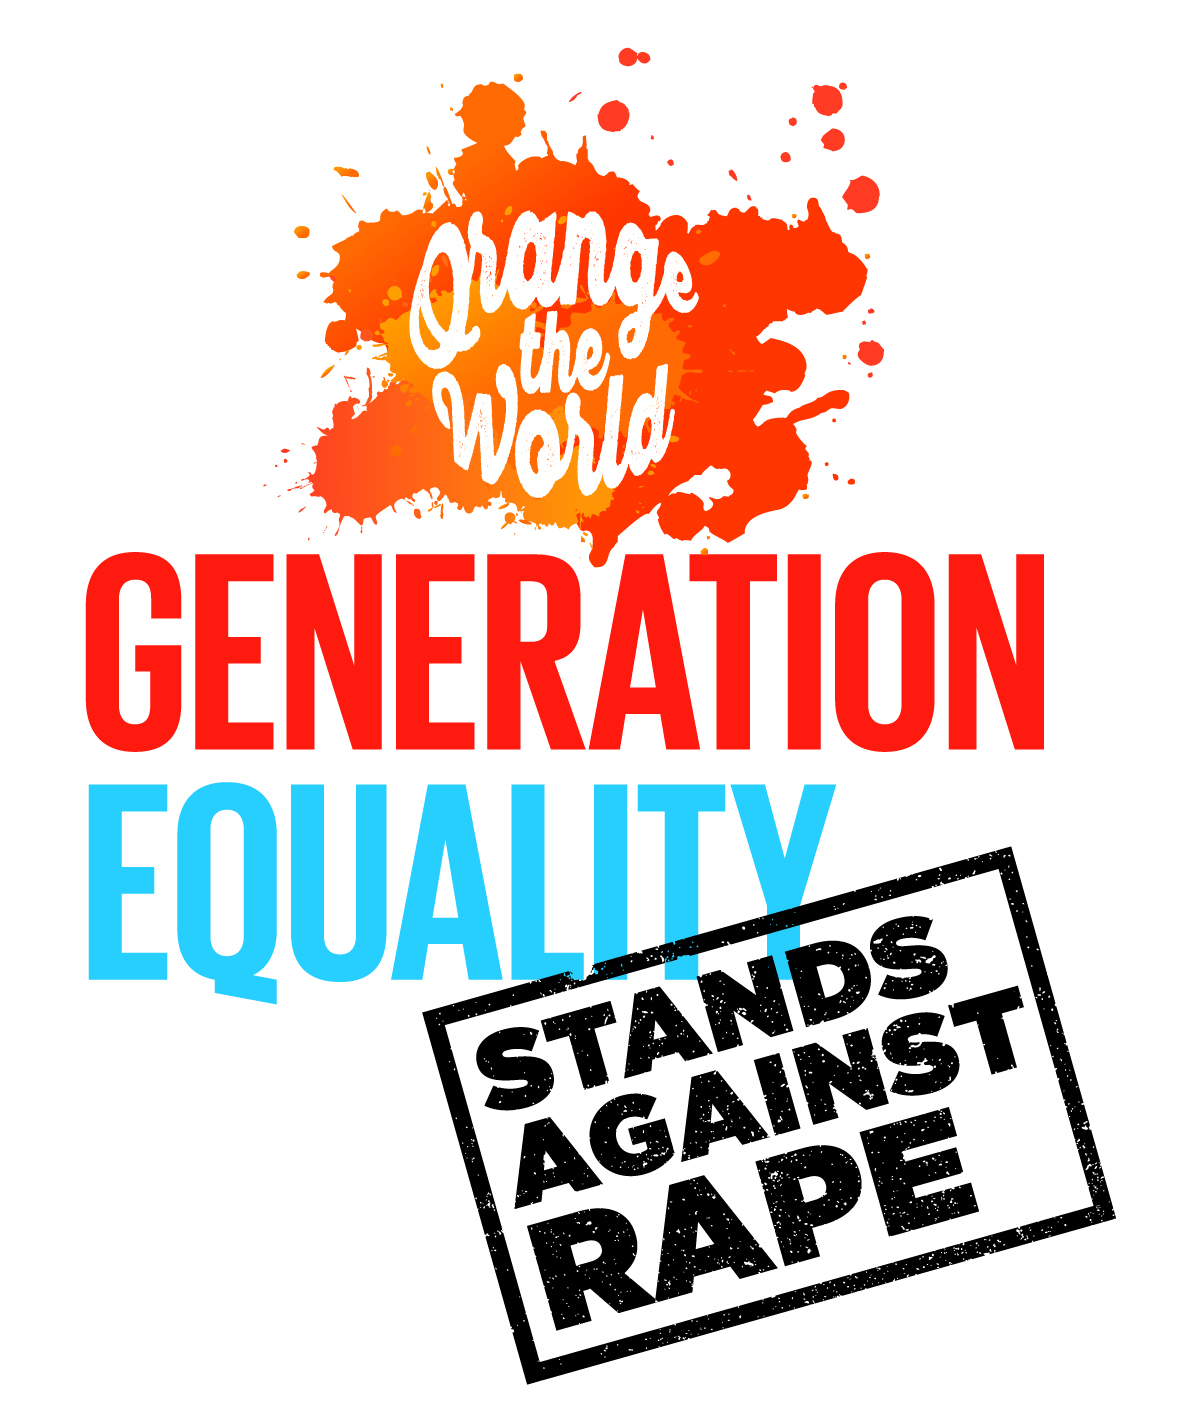 ORANGE GENERATION EQUALITY STANDS AGAINST RAPE LOGO EN Vertical RVSD 2019.11